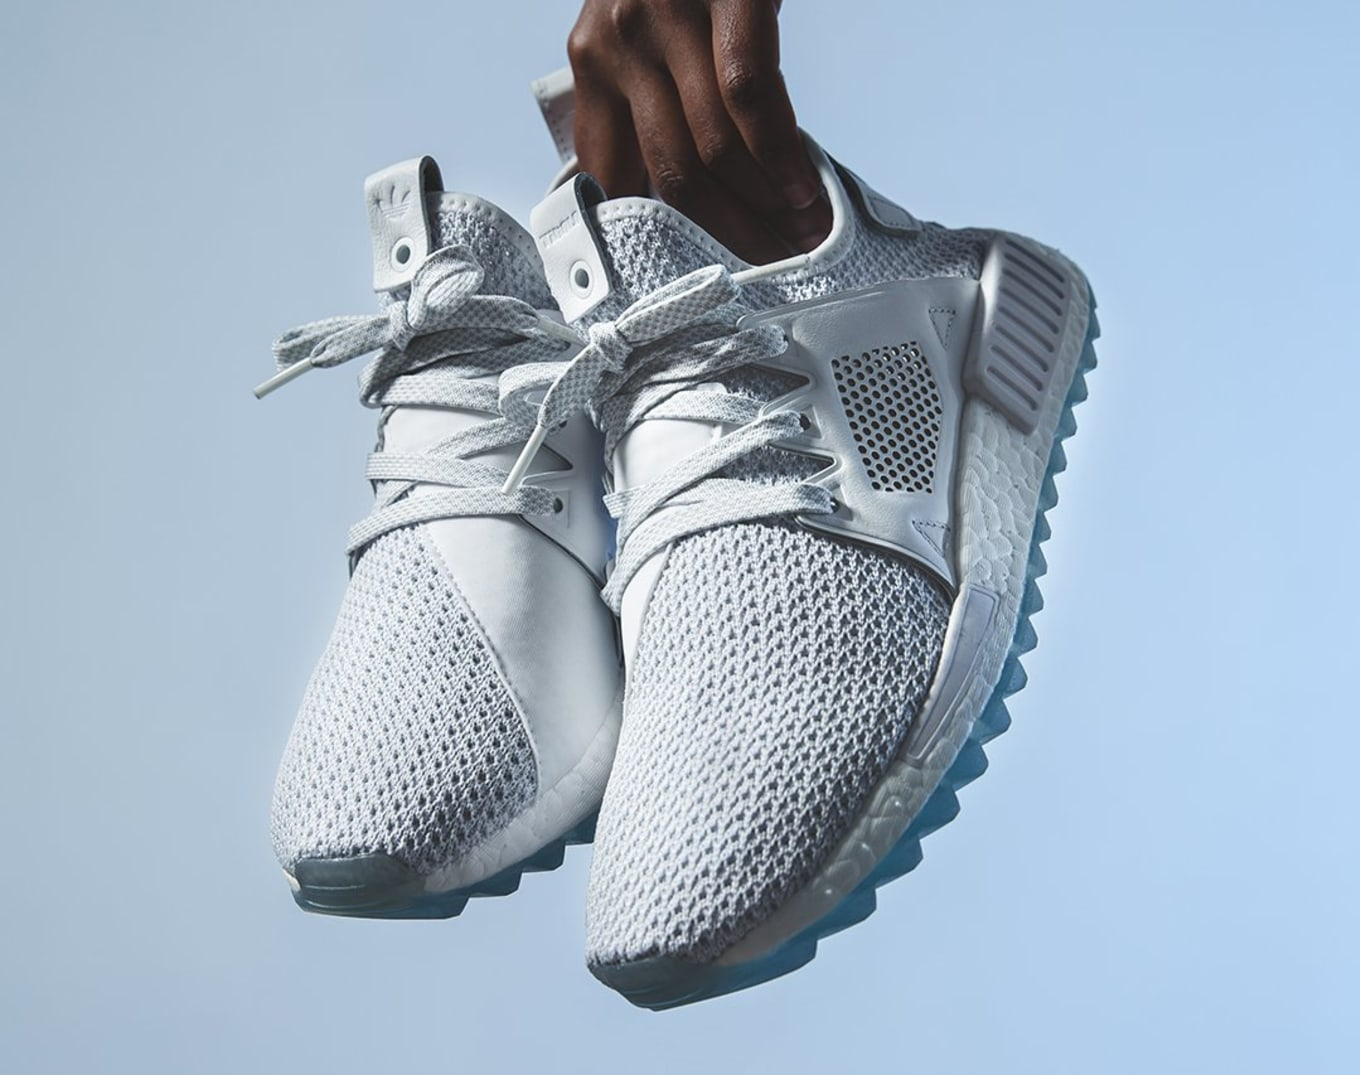 777239c96 This Icy Adidas NMD Collaboration Releases Soon. Titolo has its way with  the XR1 Trail.